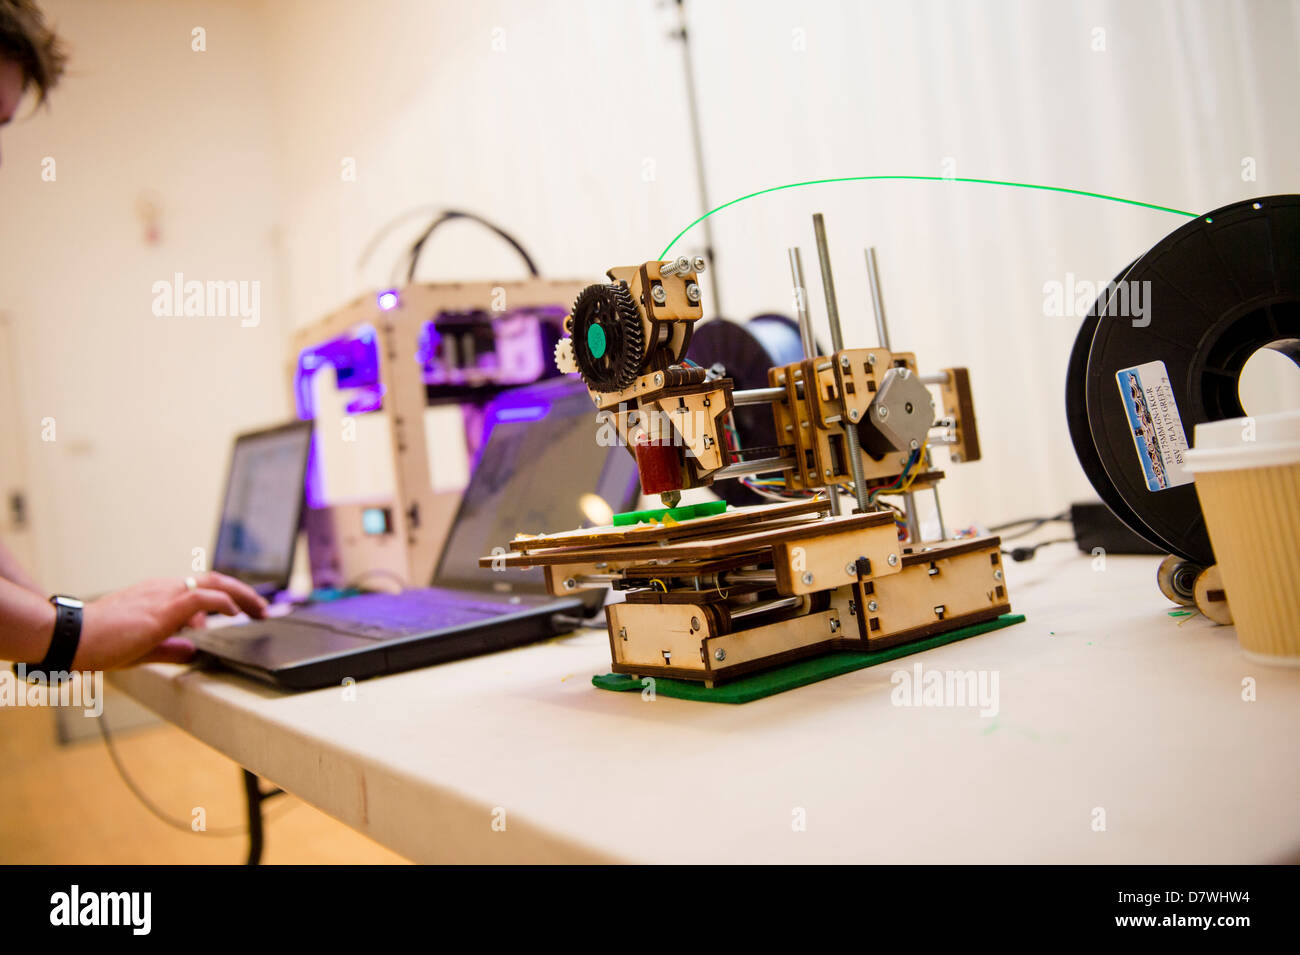 A demonstration of 3D Three dimensional computer printing technology, UK - Stock Image